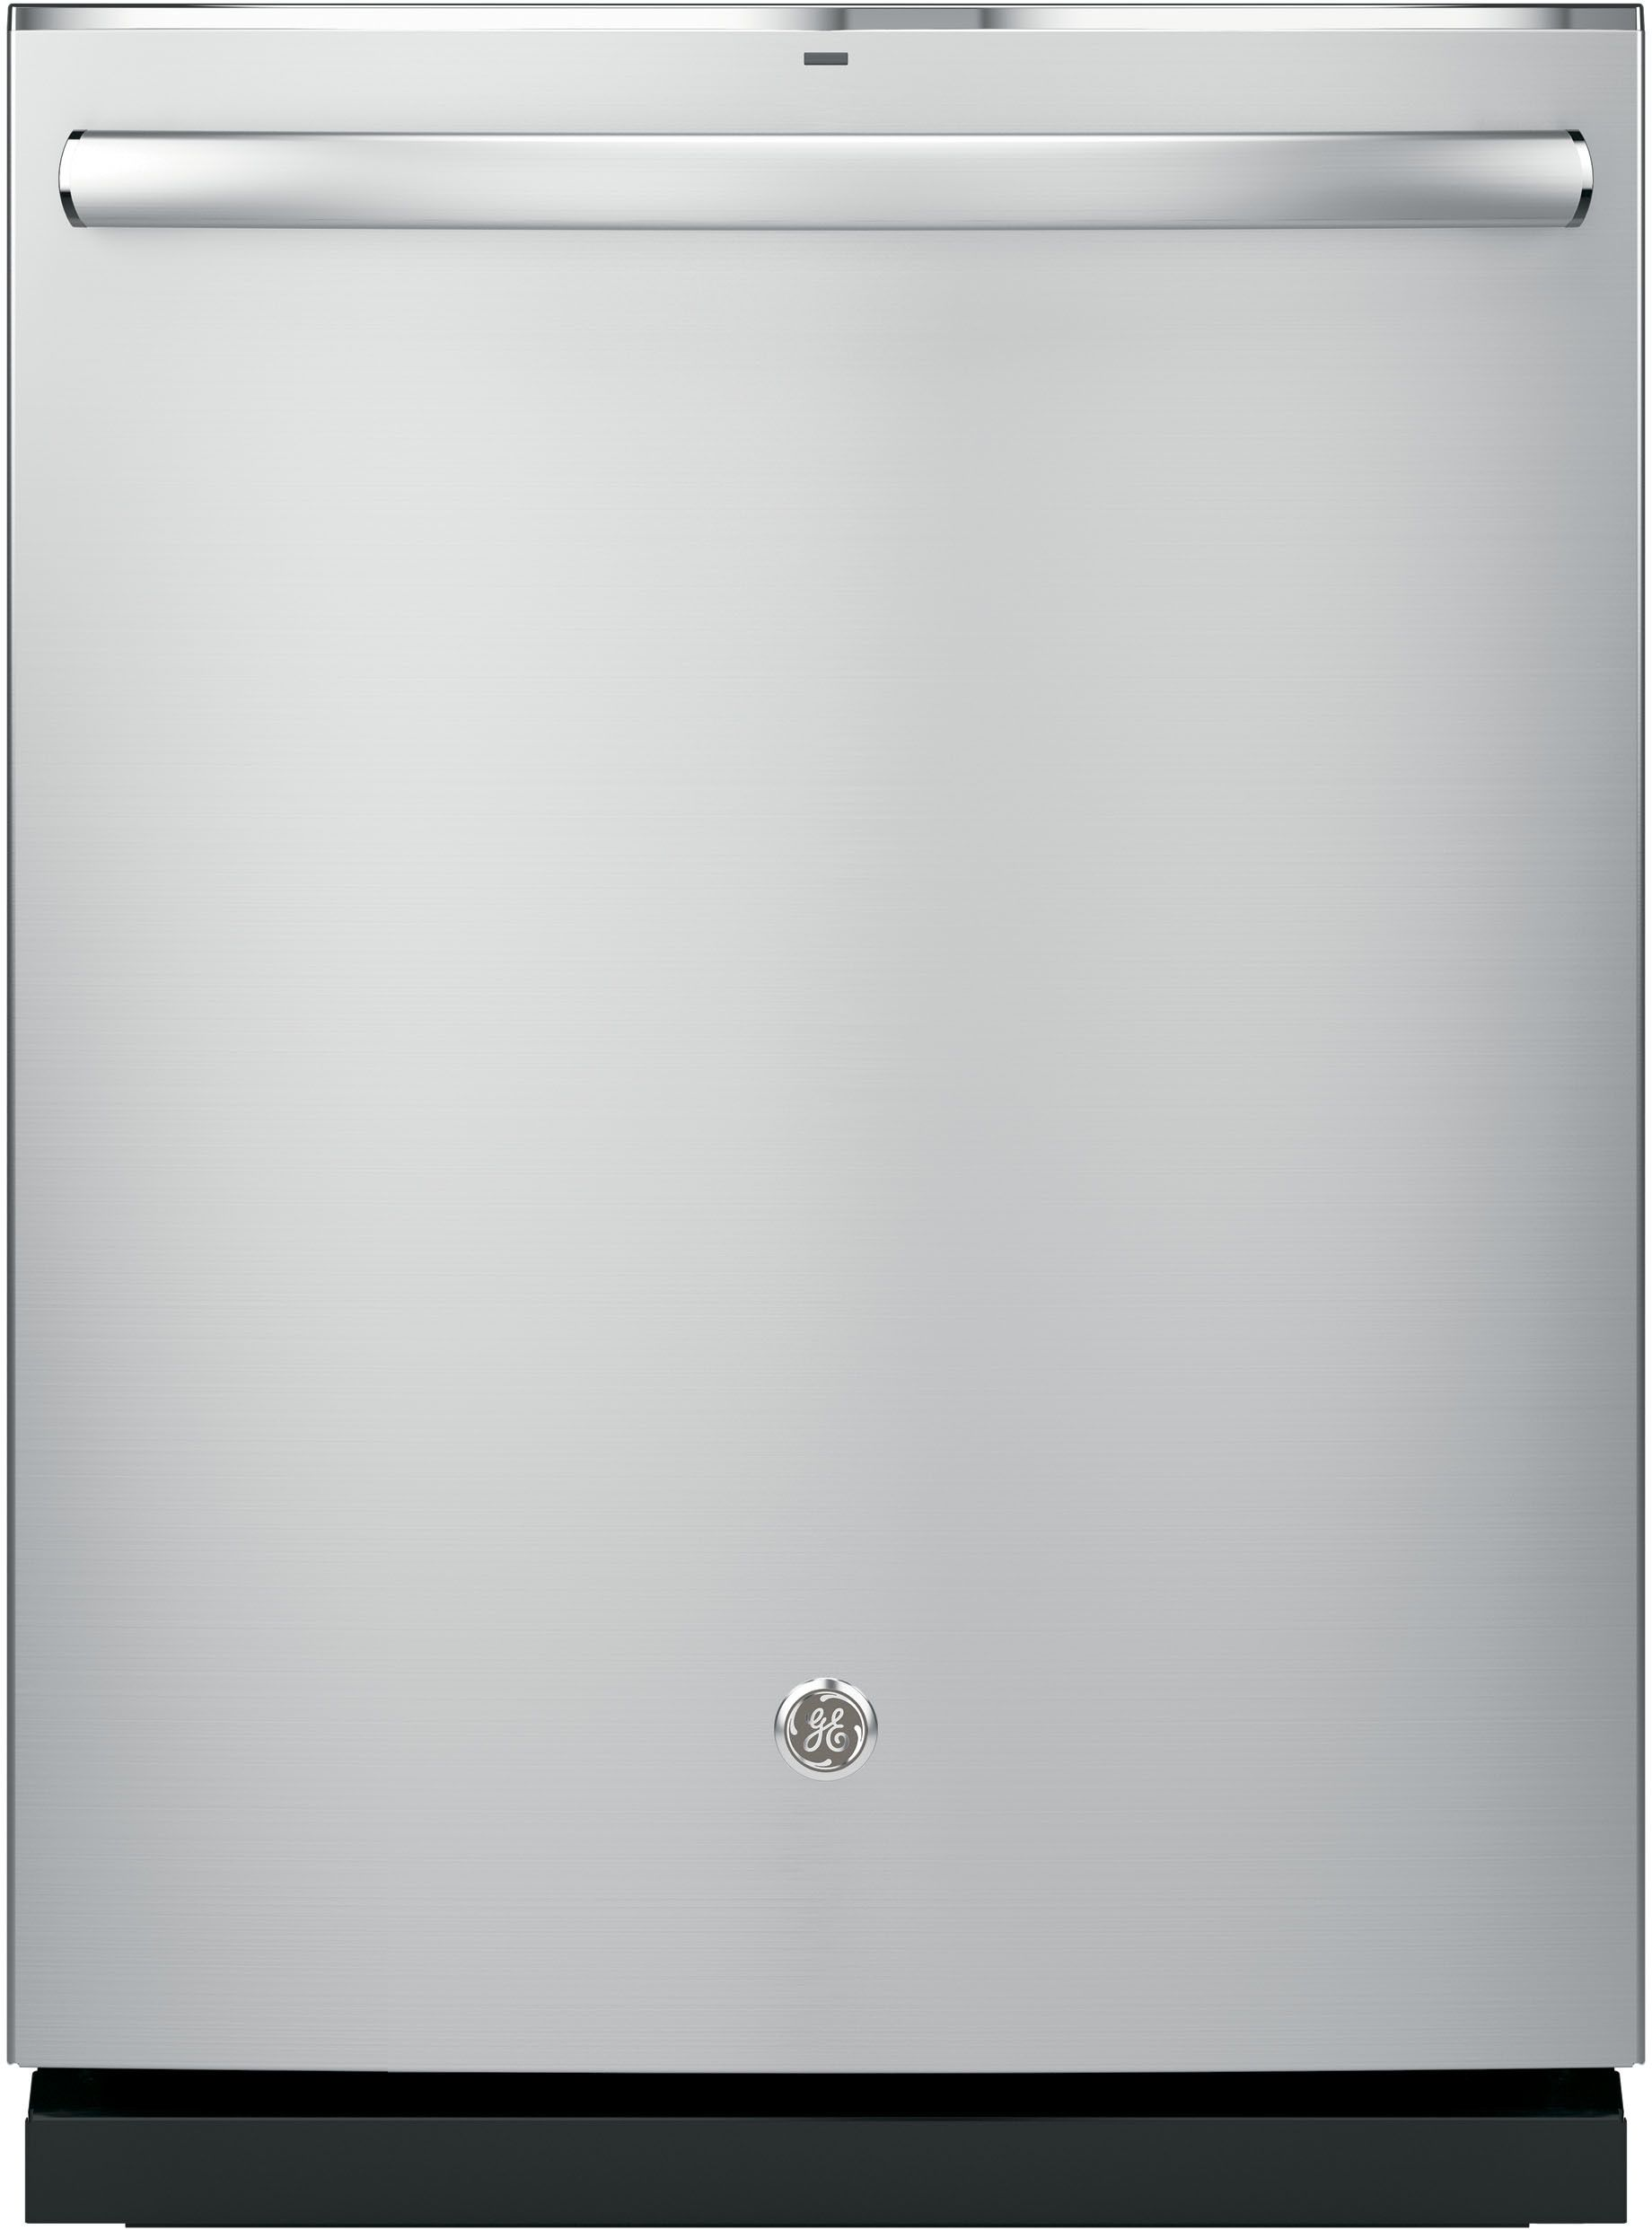 Ge Gdt655ssjss 24 Inch Fully Integrated Dishwasher With Bottle Jets Wash Zones Piranha Hard Food Disposer Adjustable Upper Rack 16 Place Settings 4 Wash C Built In Dishwasher Steel Tub Integrated Dishwasher